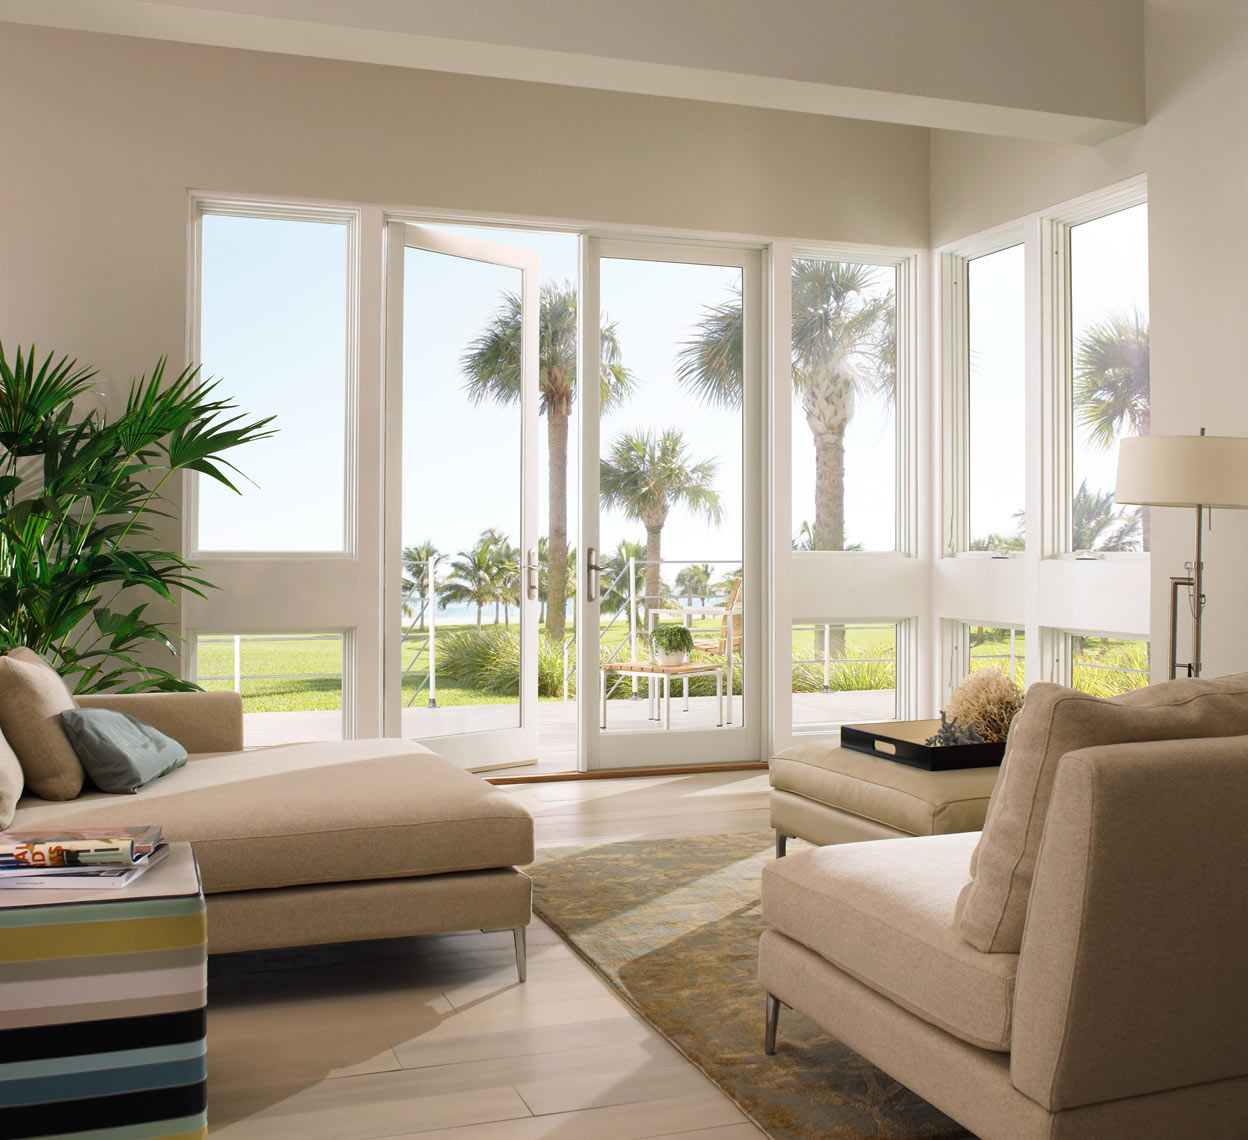 Beachhouse/Florida/white french door/Marvin Windows/studio set photography